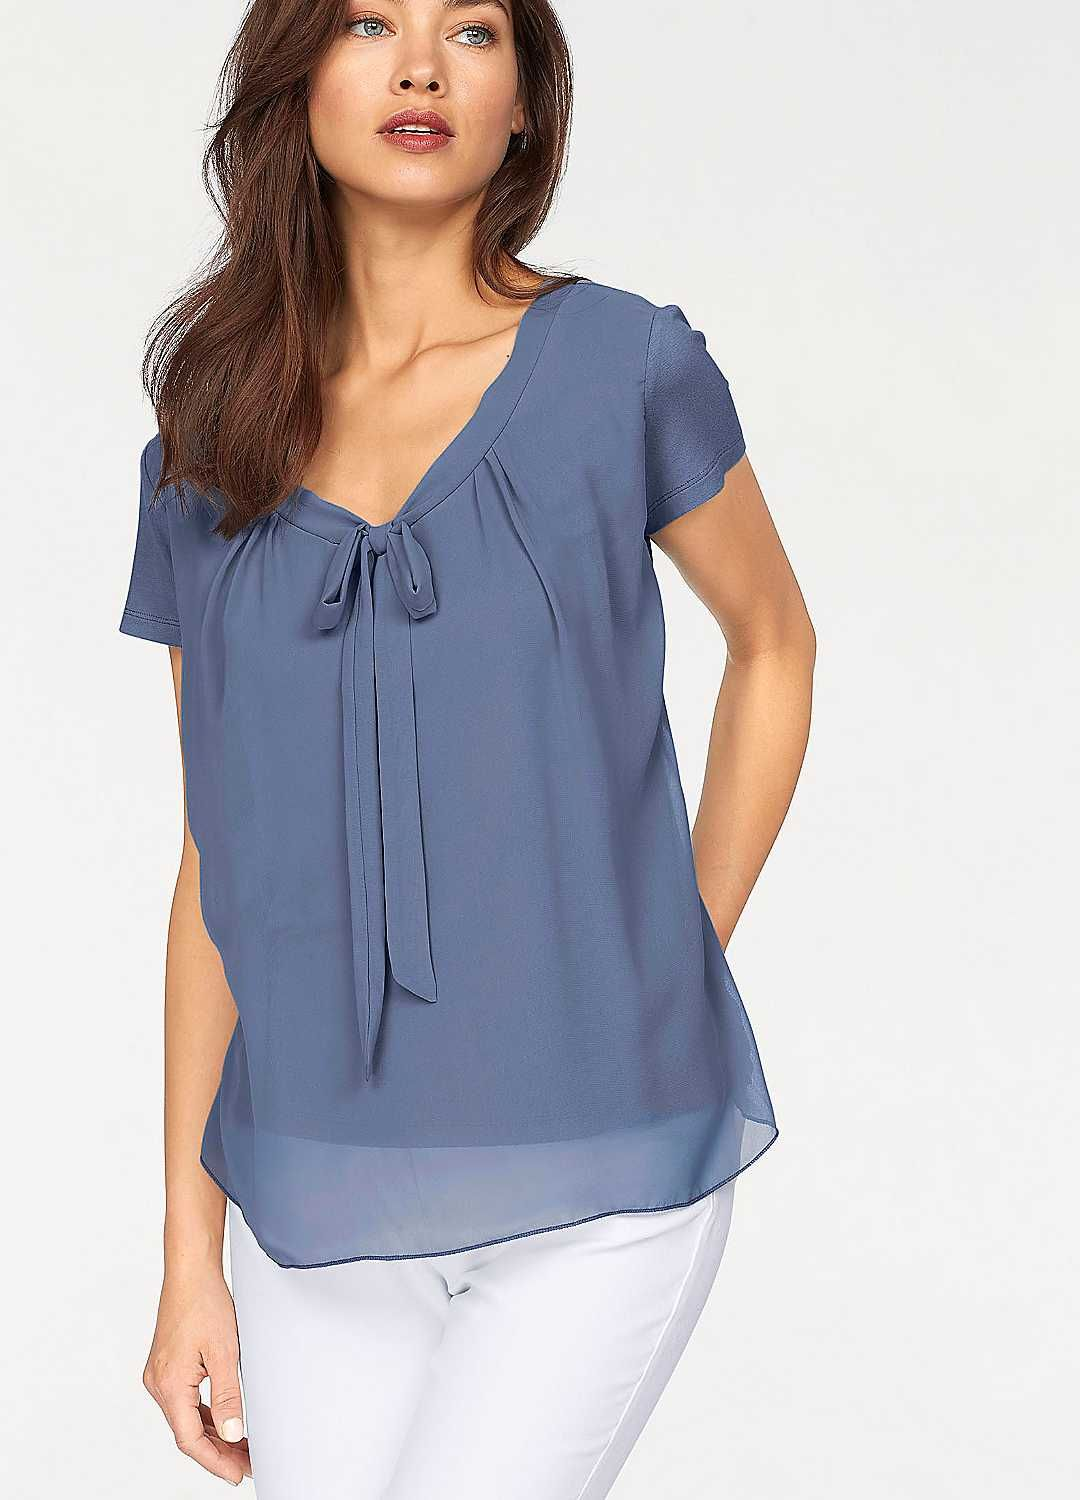 5bf248986cd3 Pussy Bow Blouse Top with Chiffon Front by Vivance